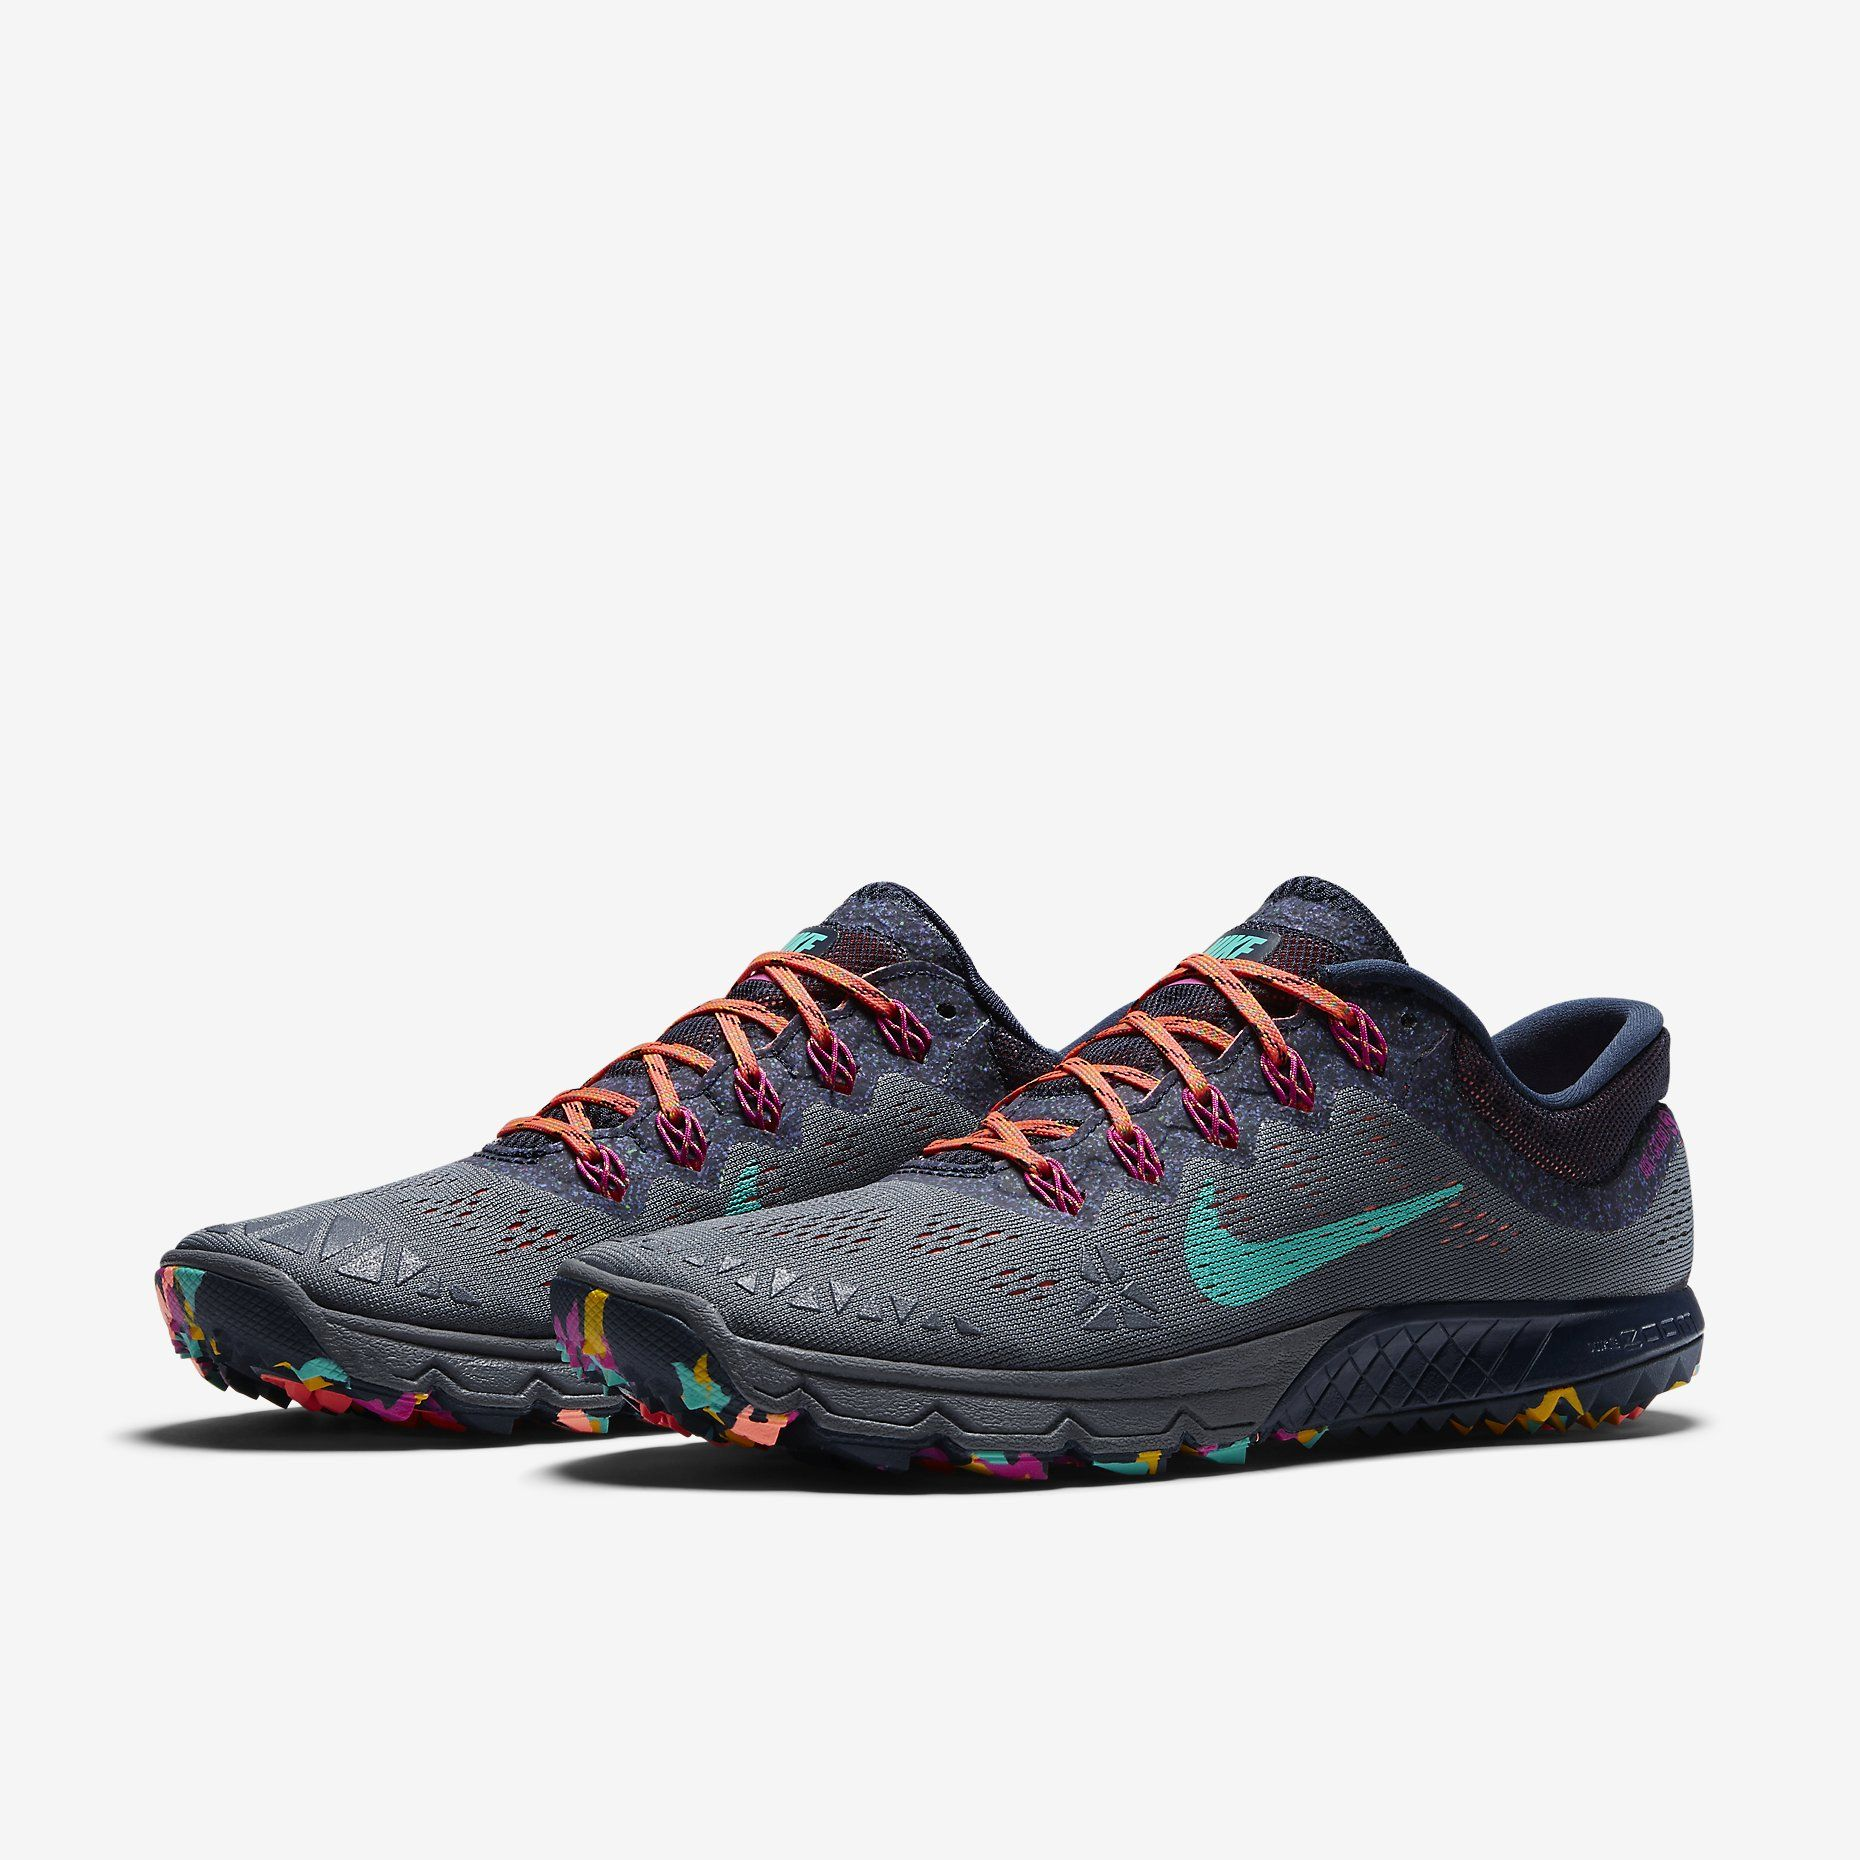 nike internationalist grey idealo christmas